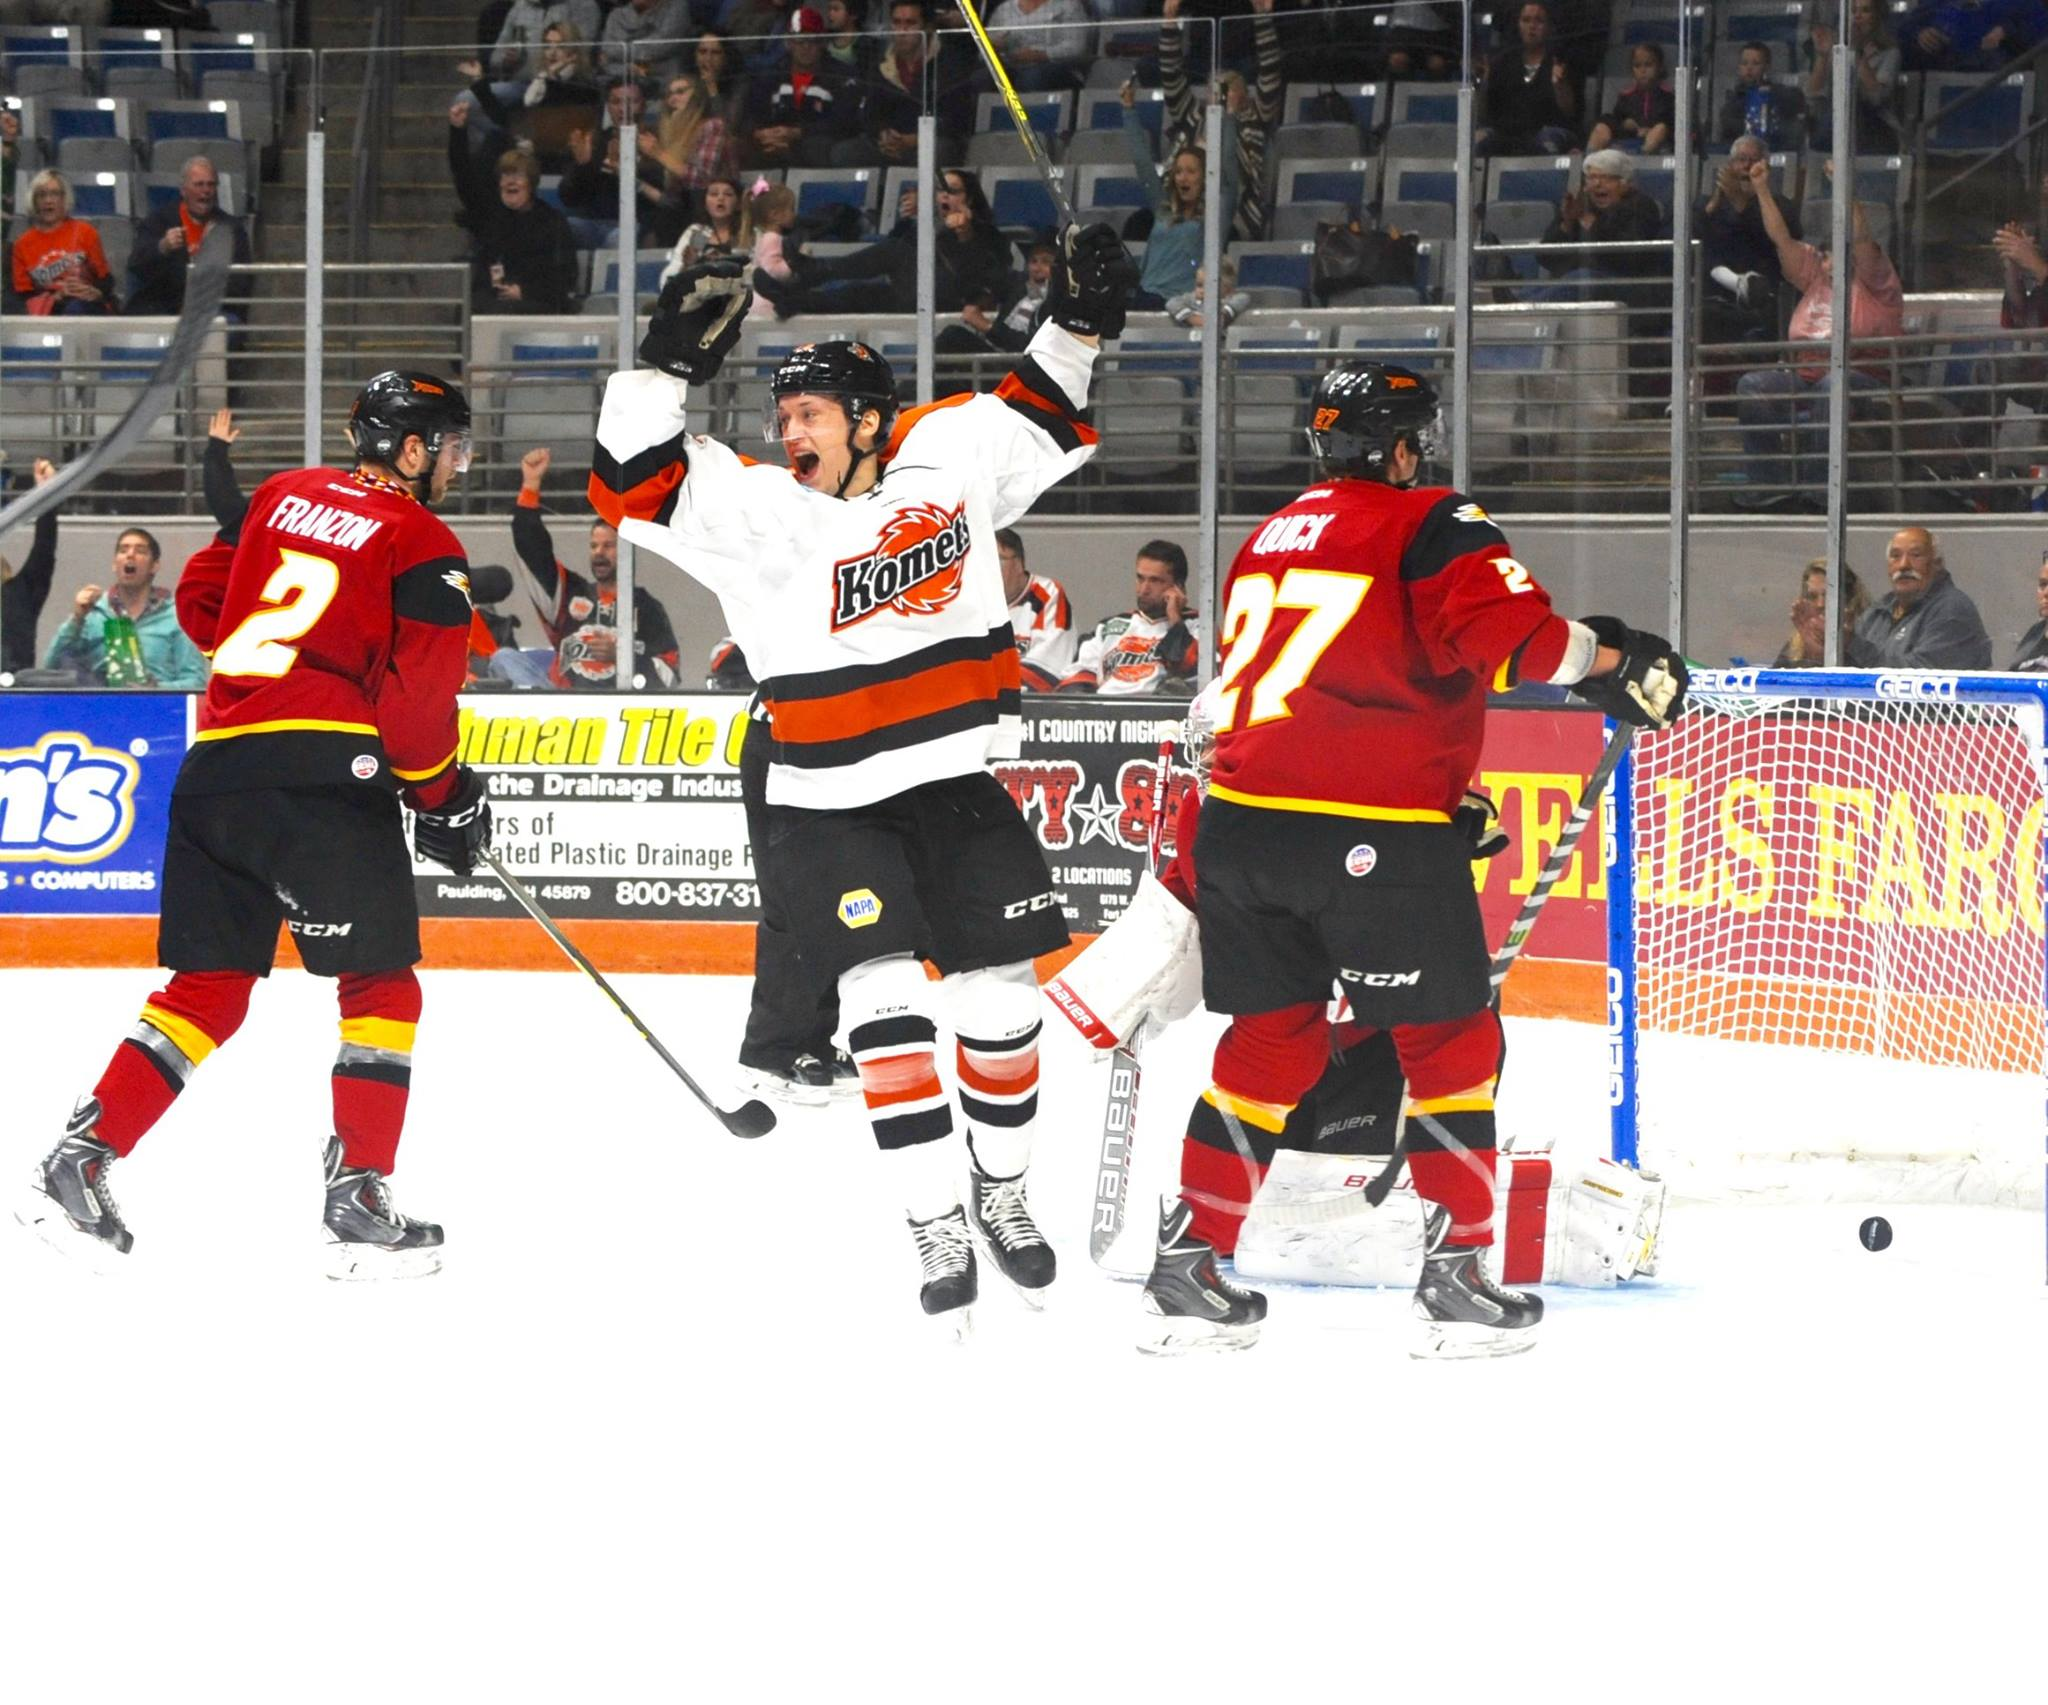 You'll be chanting along with the crowd in no time when the Komets score!